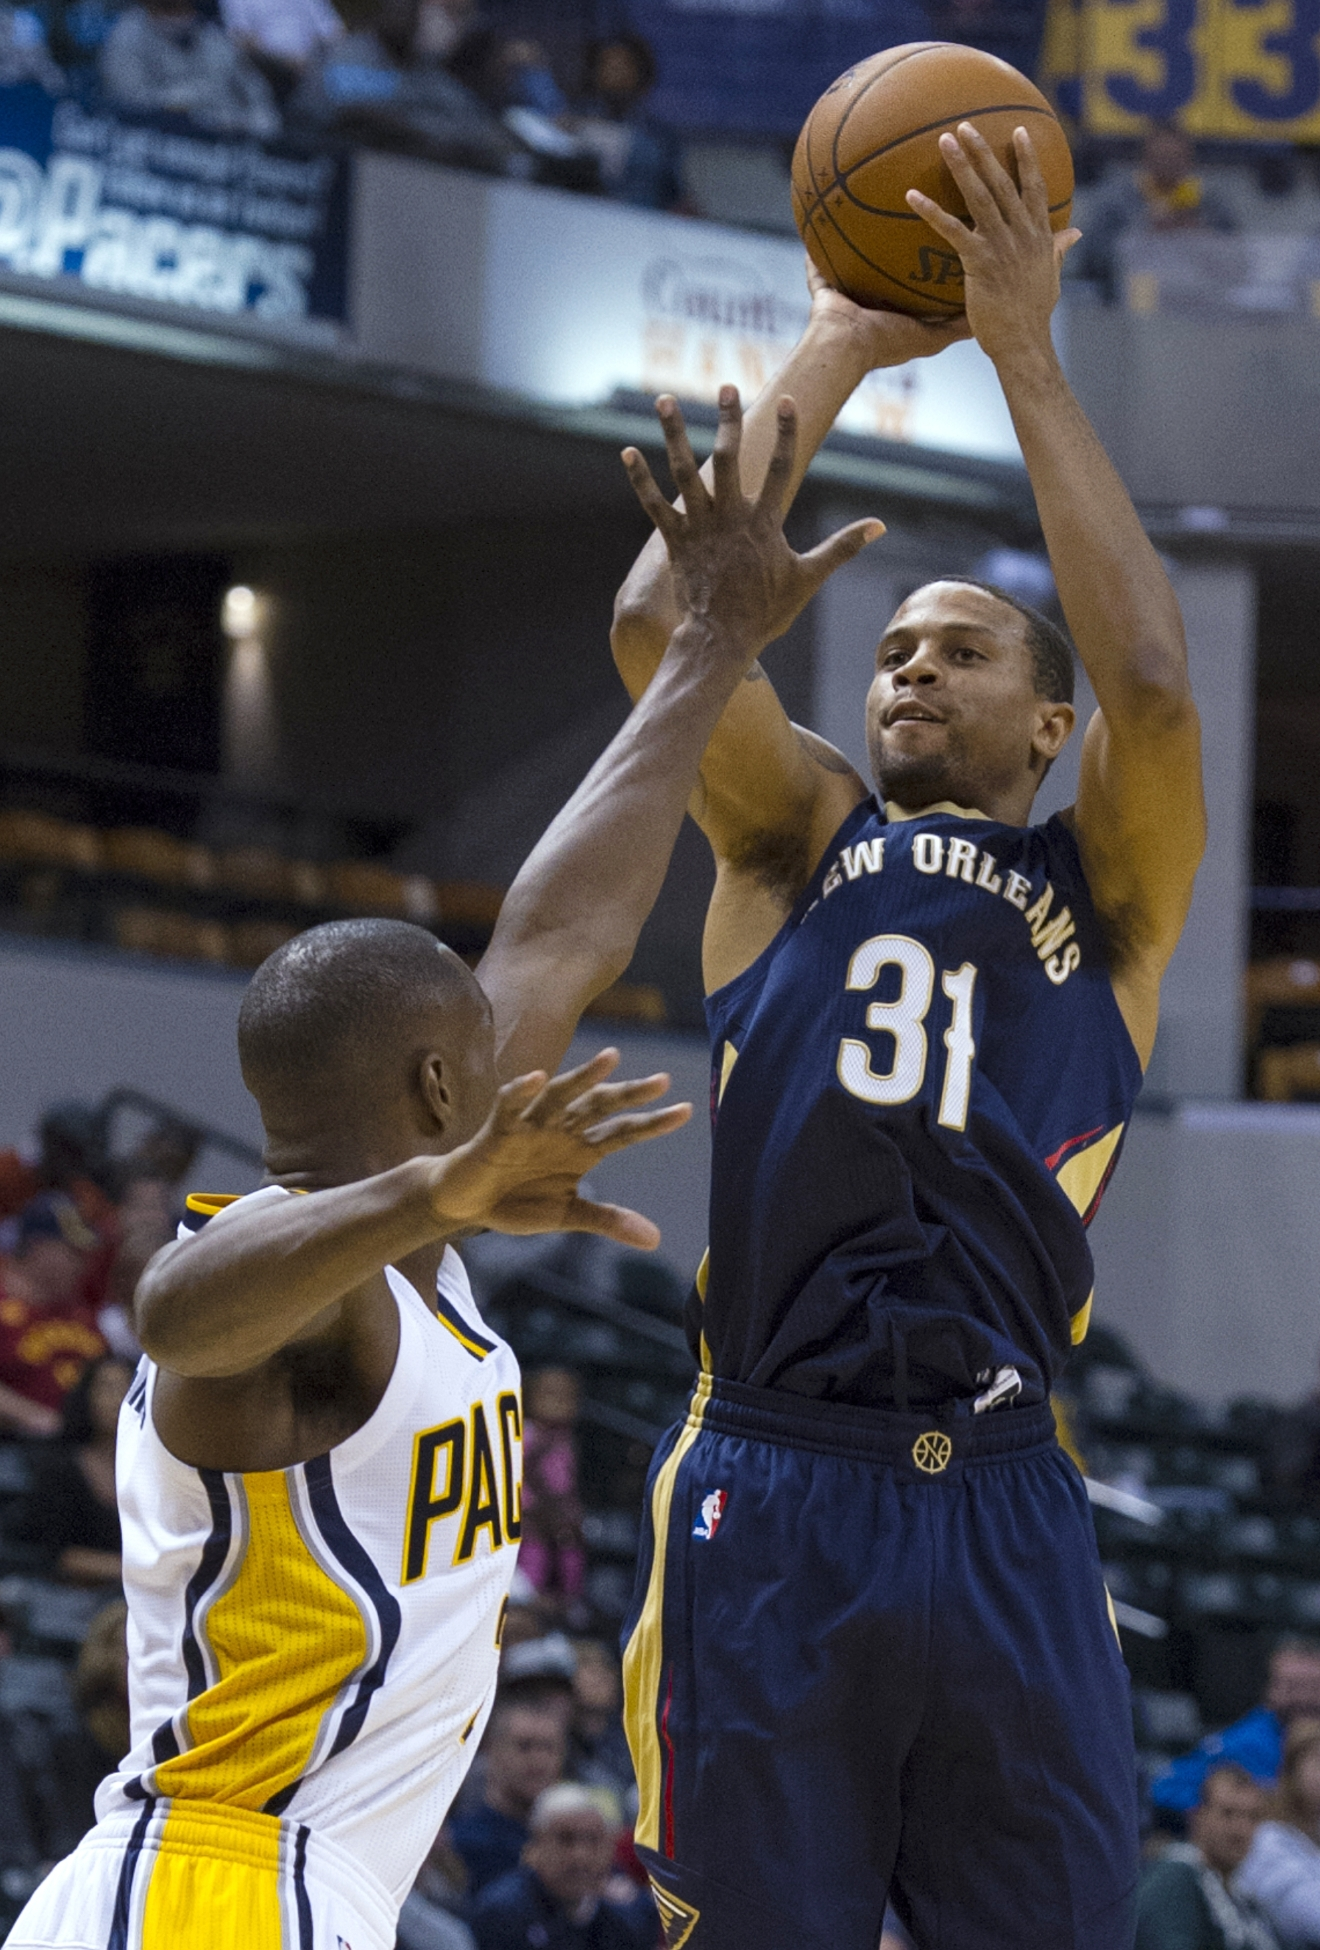 FILE - In this Oct. 3, 2015, file photo, New Orleans Pelicans' Bryce Dejean-Jones (31) shoots during the first half of a preseason NBA basketball game against the Indiana Pacers in Indianapolis.  Police say Saturday, May 28, 2016,  Dejean-Jones was fatally shot after breaking down the door to a Dallas apartment. Sr. Cpl. DeMarquis Black said in a statement that officers were called early Saturday morning and found the 23-year-old player collapsed in an outdoor passageway. He was taken to a hospital where he died. (AP Photo/Doug McSchooler, File)